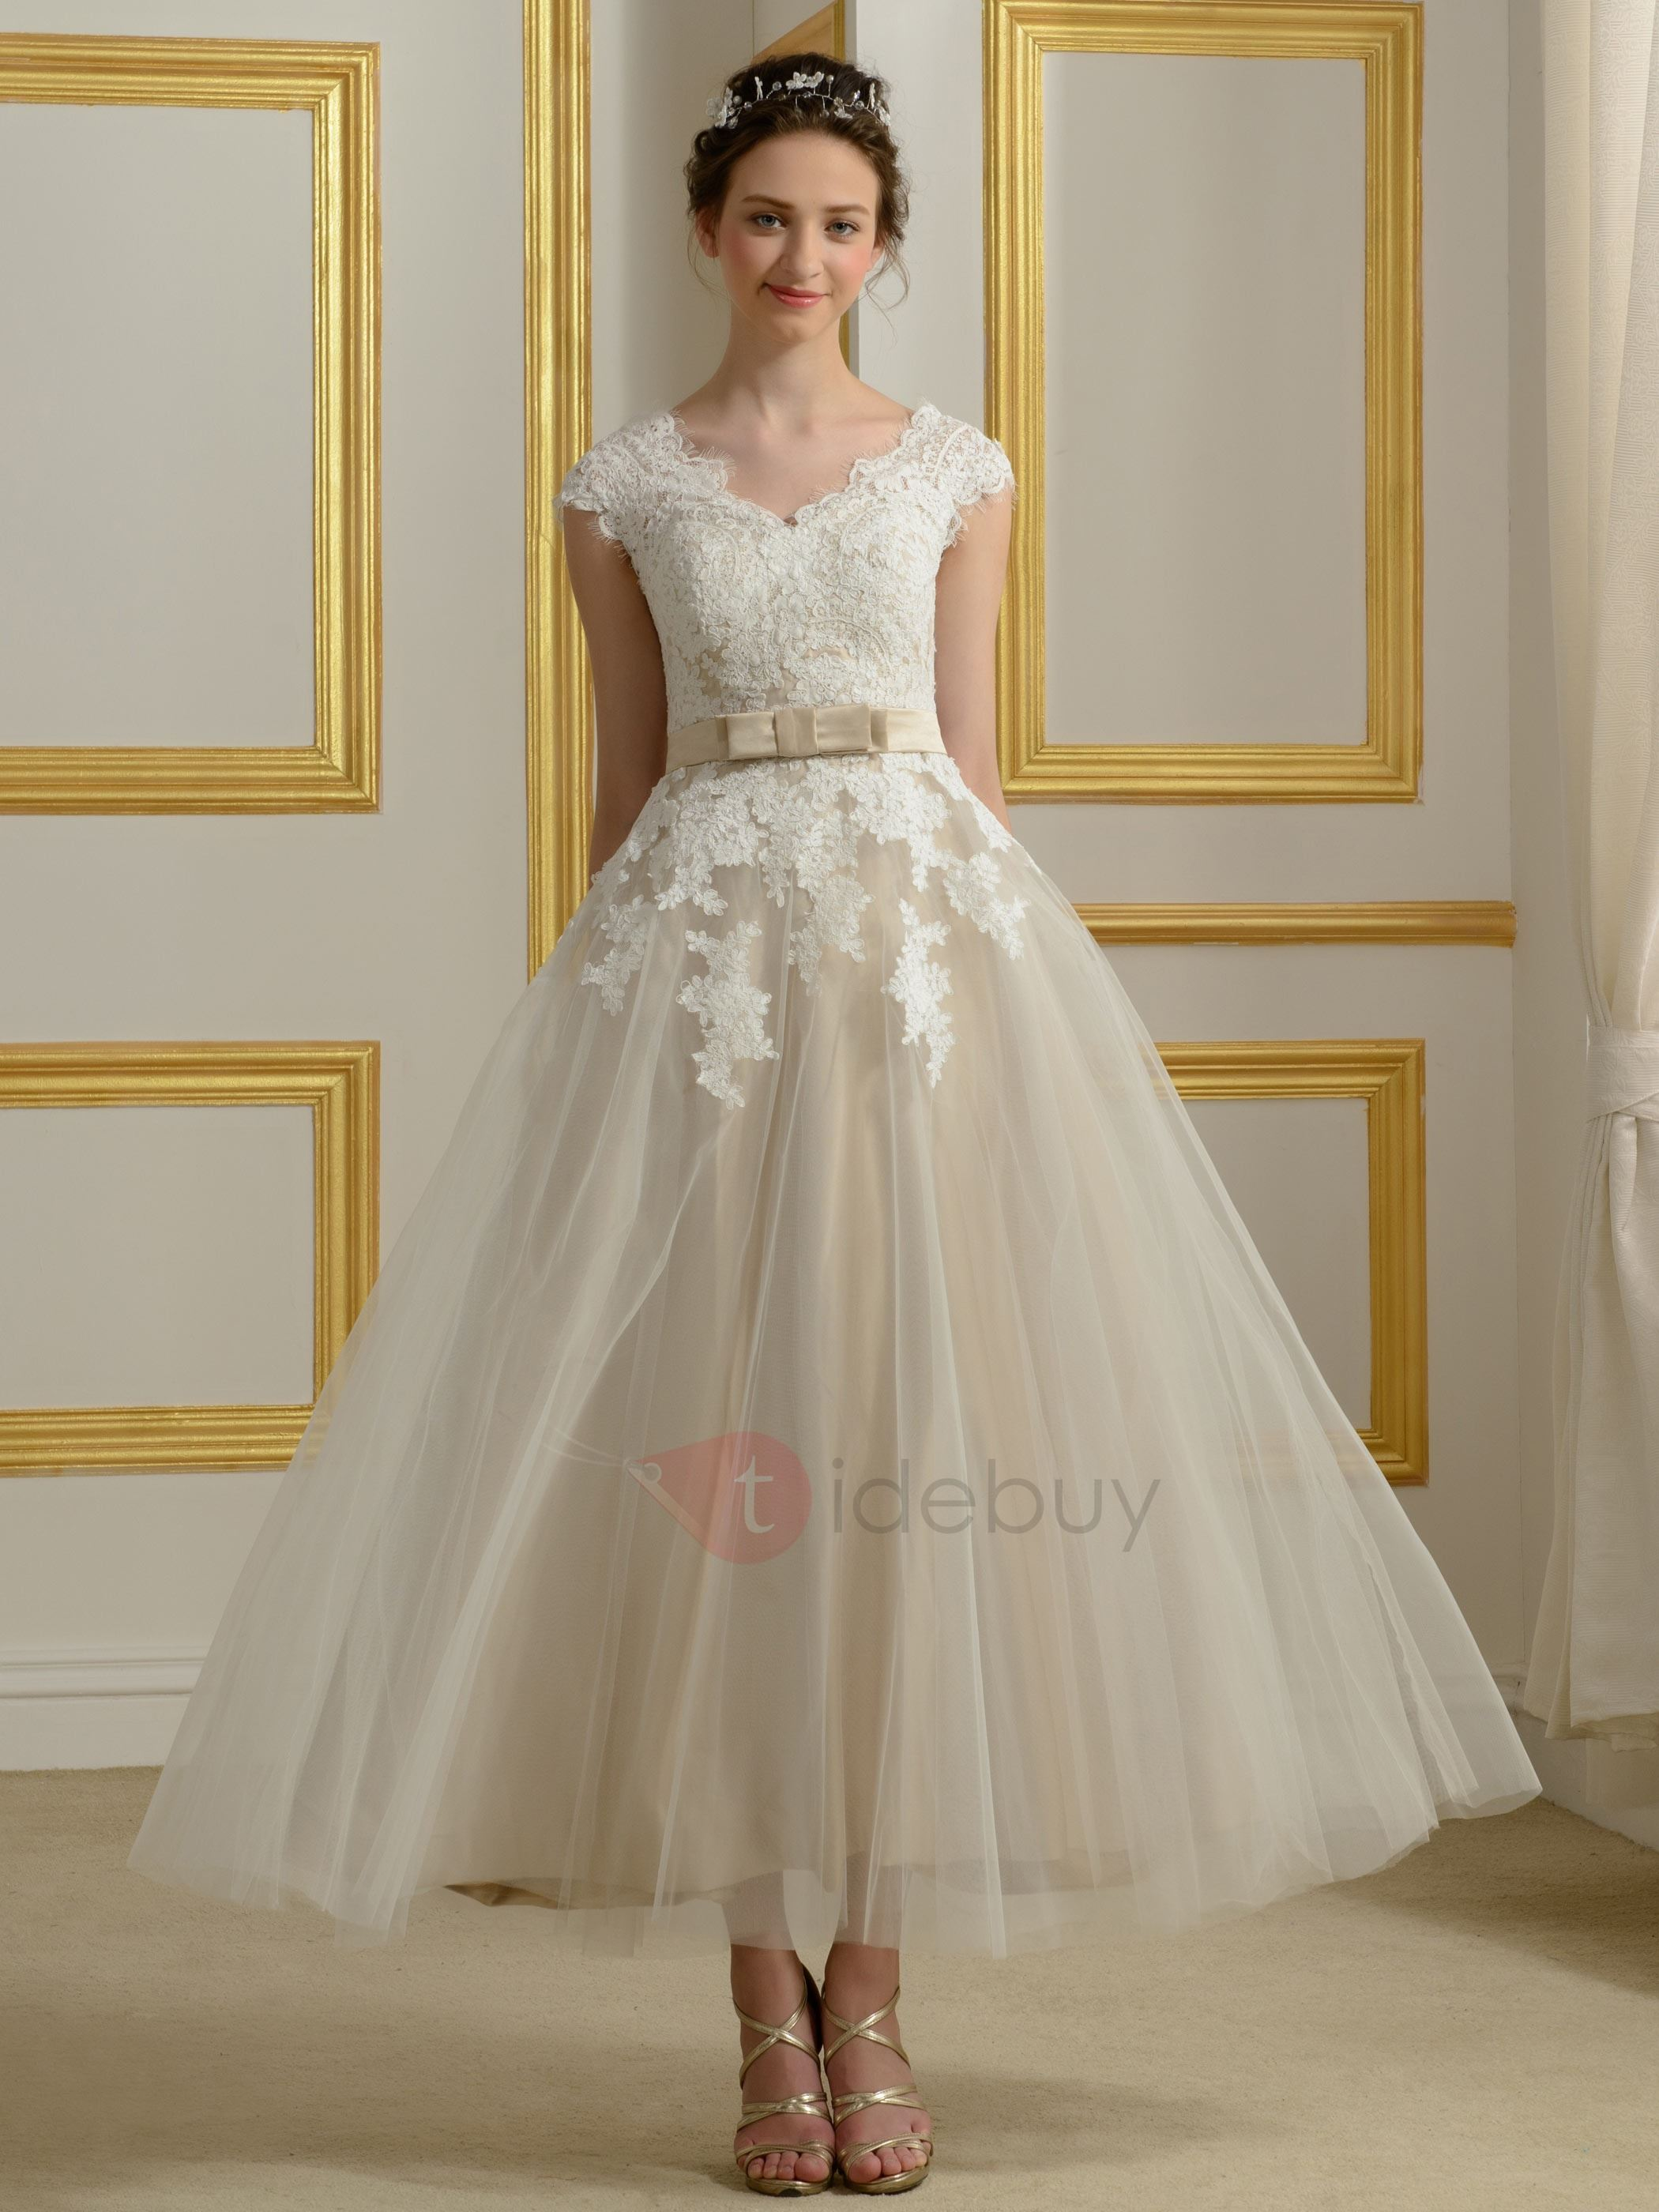 A-line Wedding Dresses, Buy A-line Bride Gowns Online : Tidebuy.com